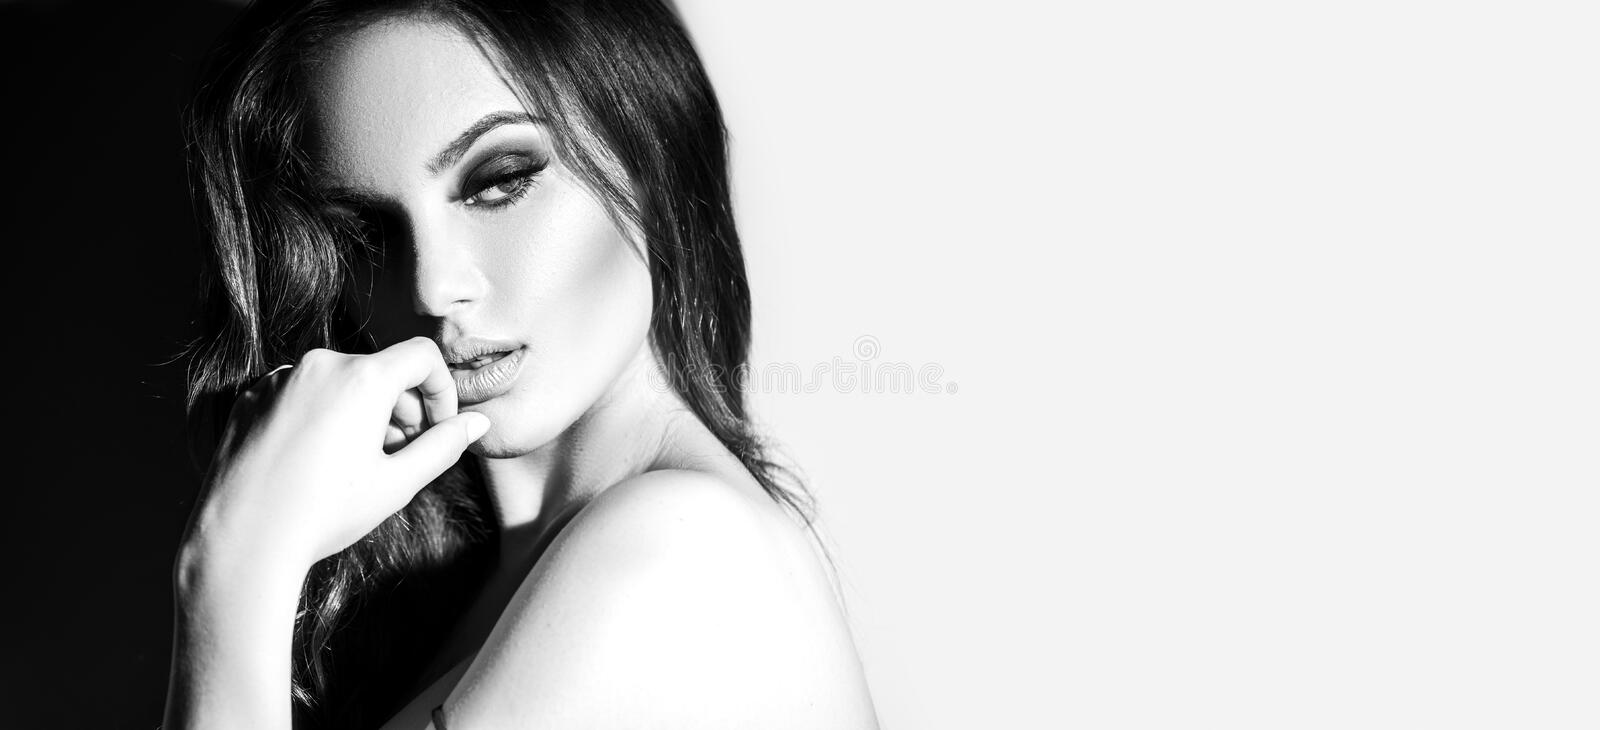 young woman black and white portrait. Seductive young woman with long hair royalty free stock photo